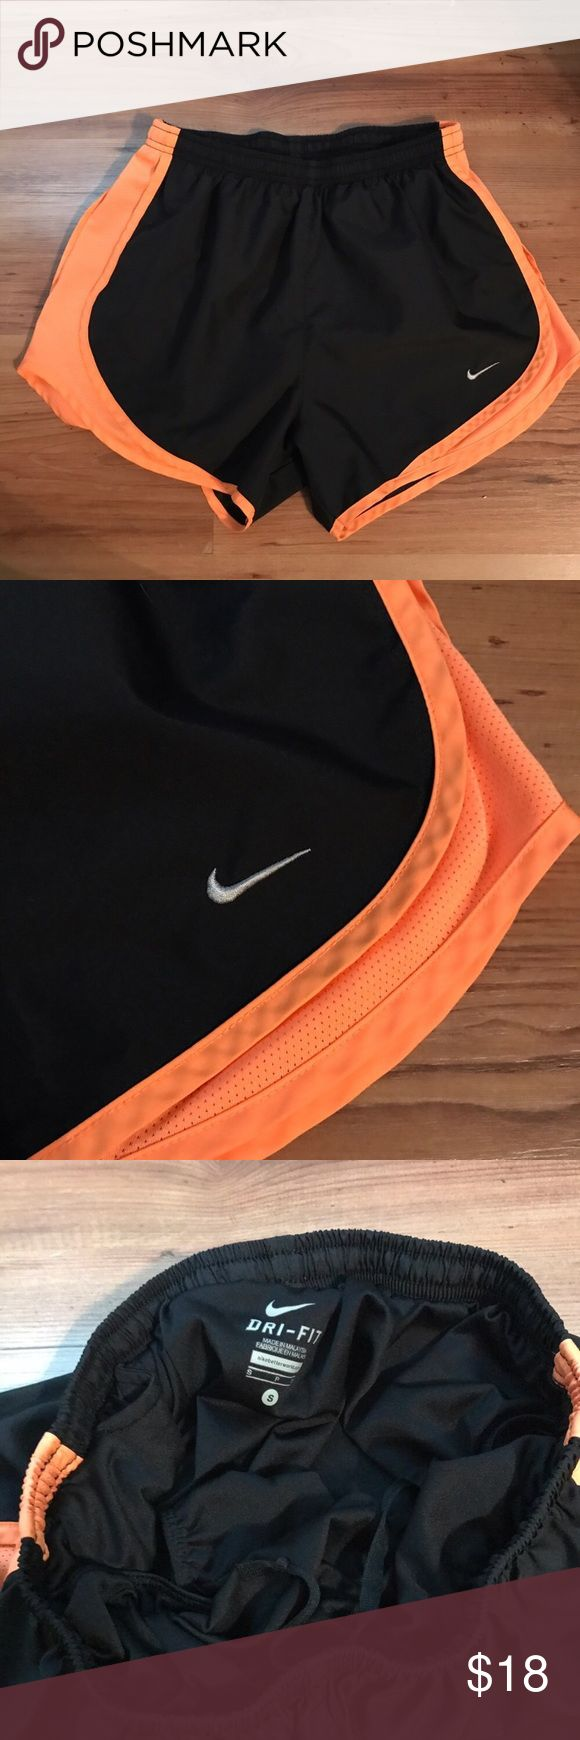 Nike Tempo Running Shorts DriFit Linned Black Nike Tempo running shorts in a size small. Black with neon orange accents. Shorts are lined. ❣️ REASONABLE offers are accepted! Nike Shorts